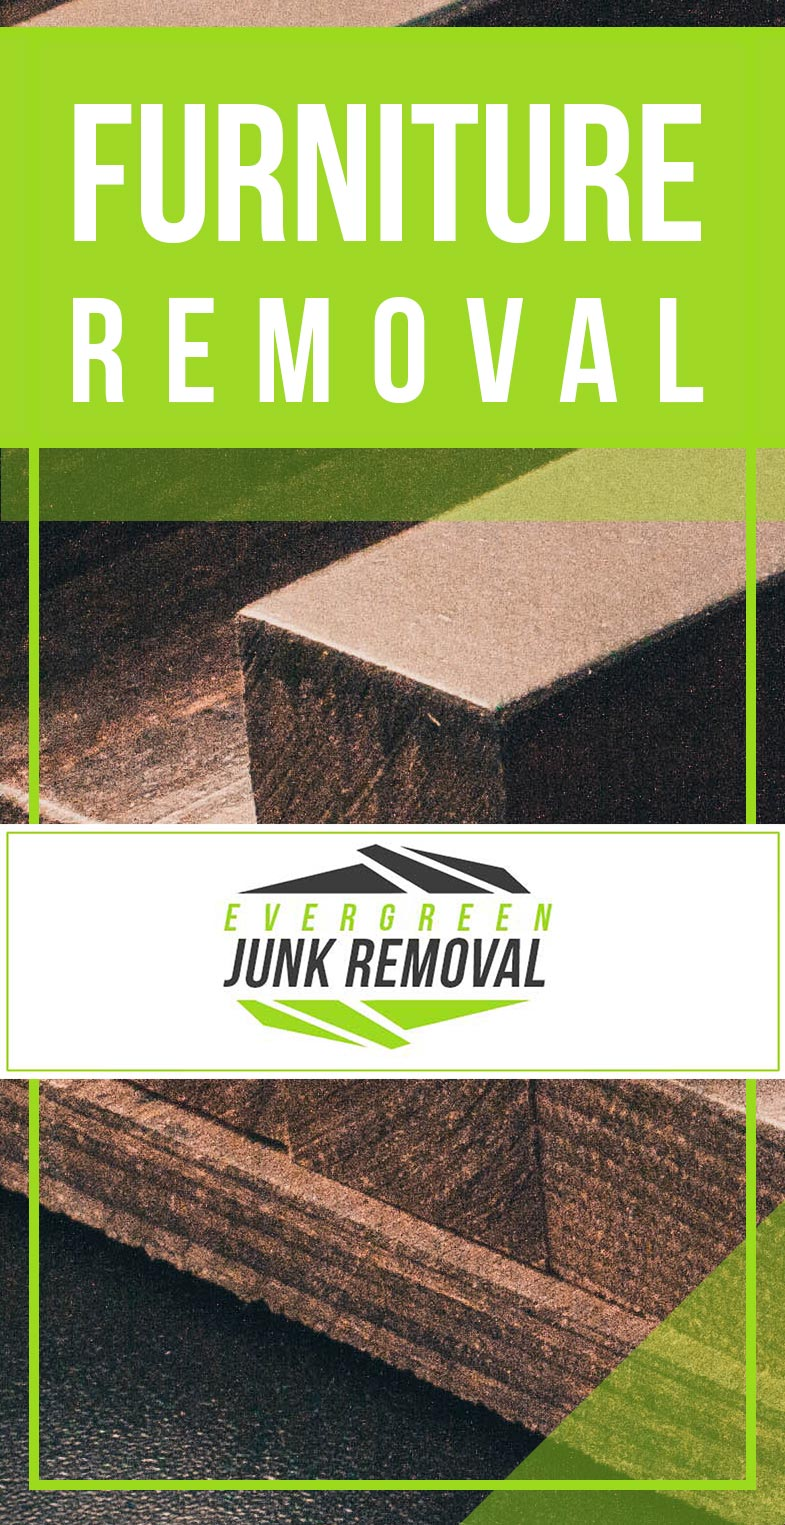 Kenmore Furniture Removal